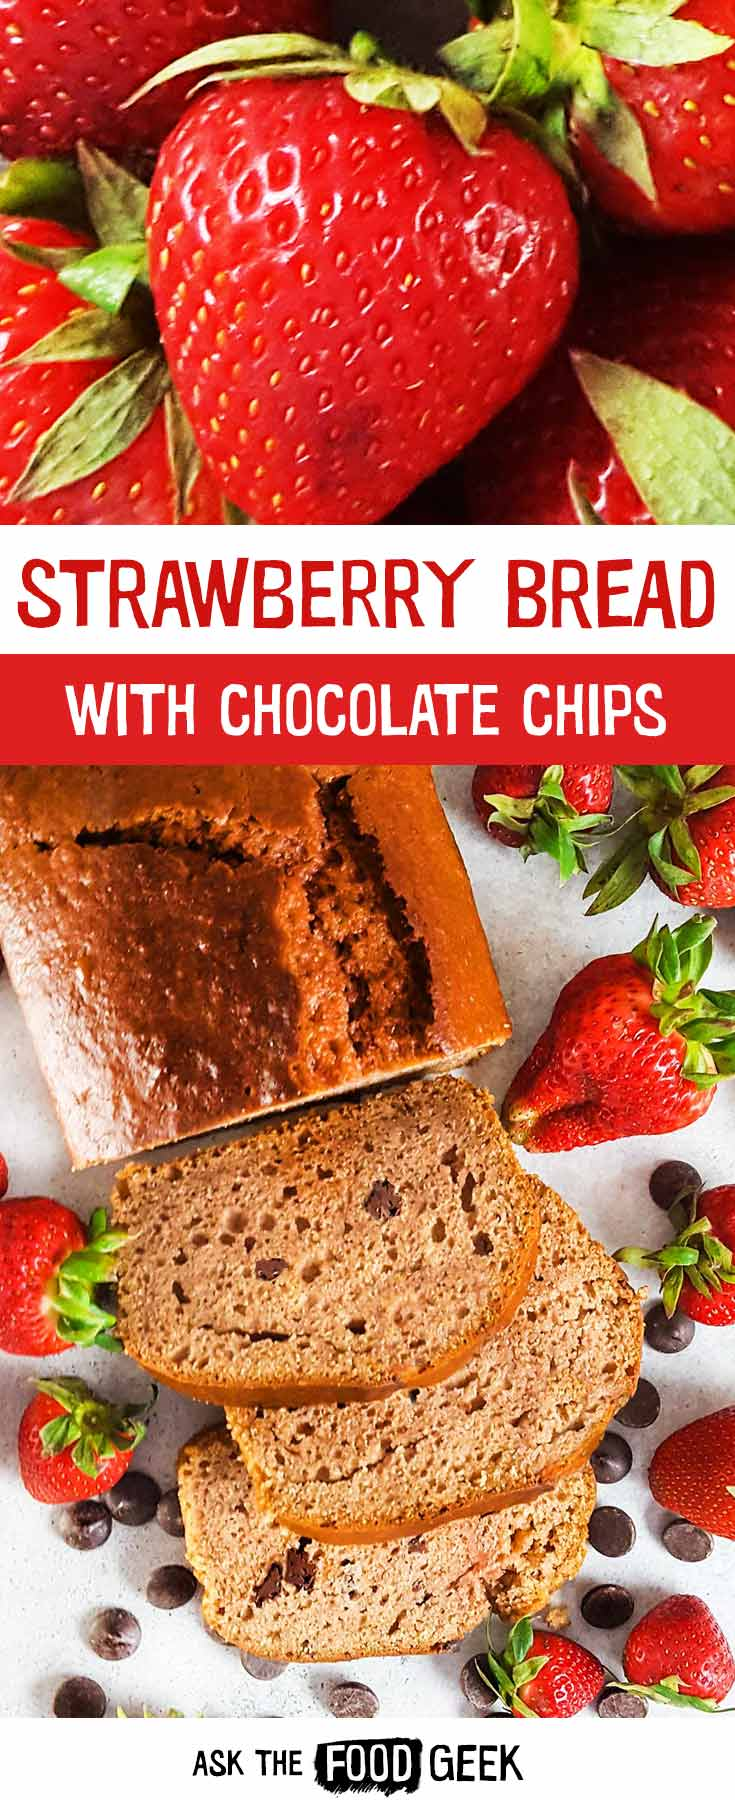 Strawberry bread with chocolate chips is an easy way to use up farmers market strawberries. Vegetarian. Dairy free.